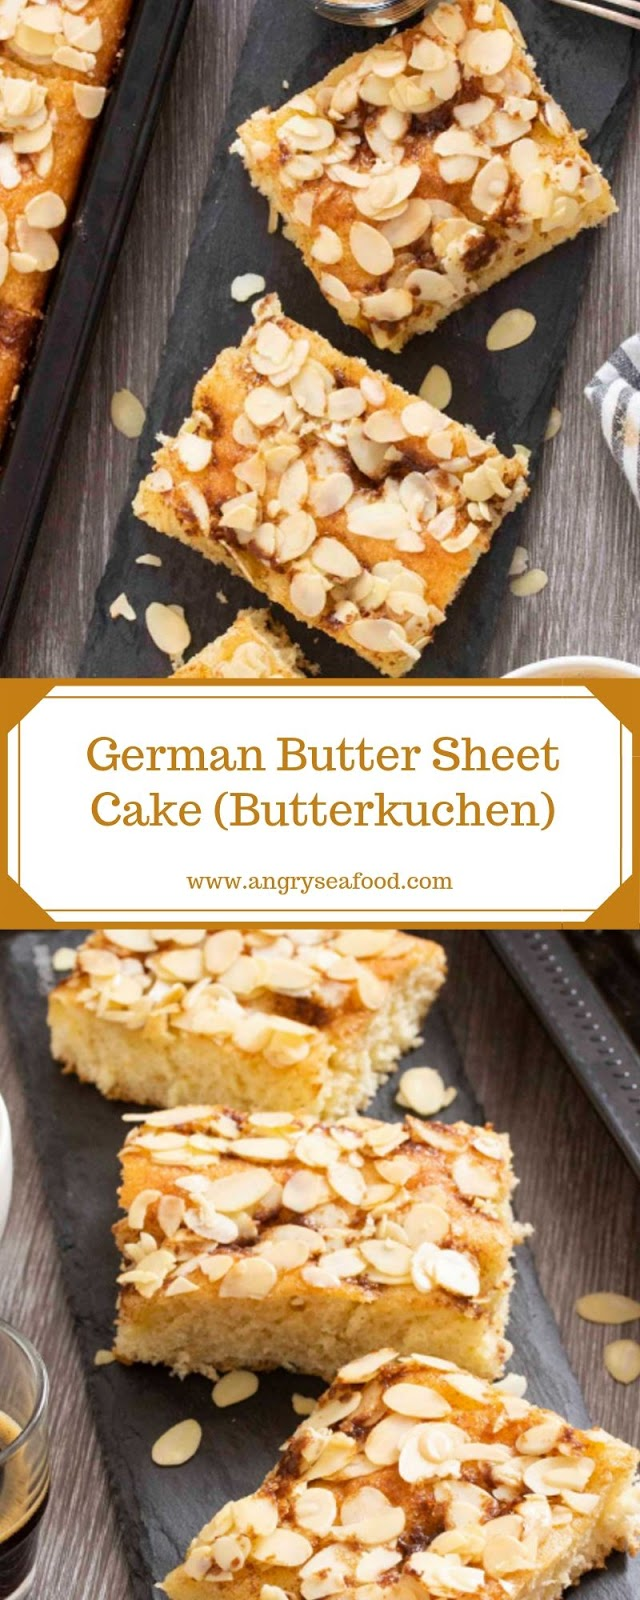 German Butter Sheet Cake (Butterkuchen)